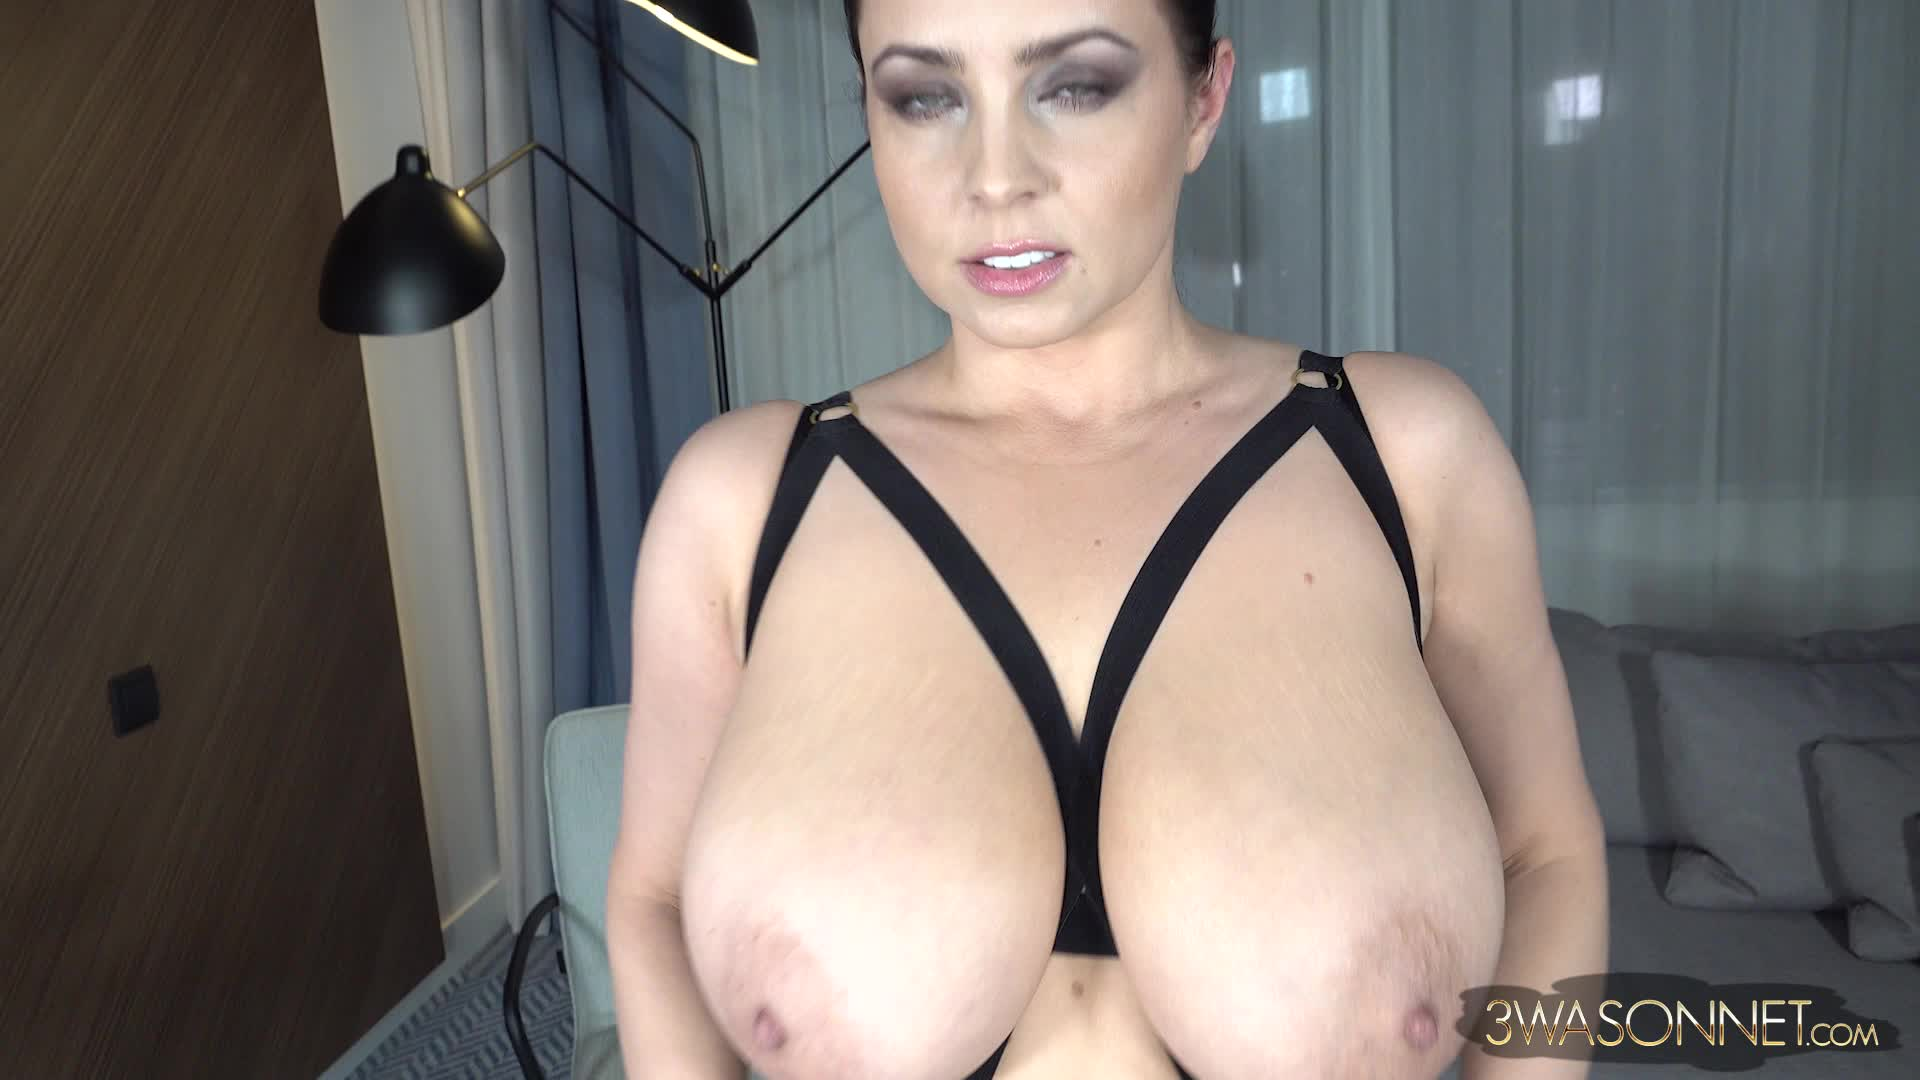 Ewa Sonnet's big boobs gently pushed together